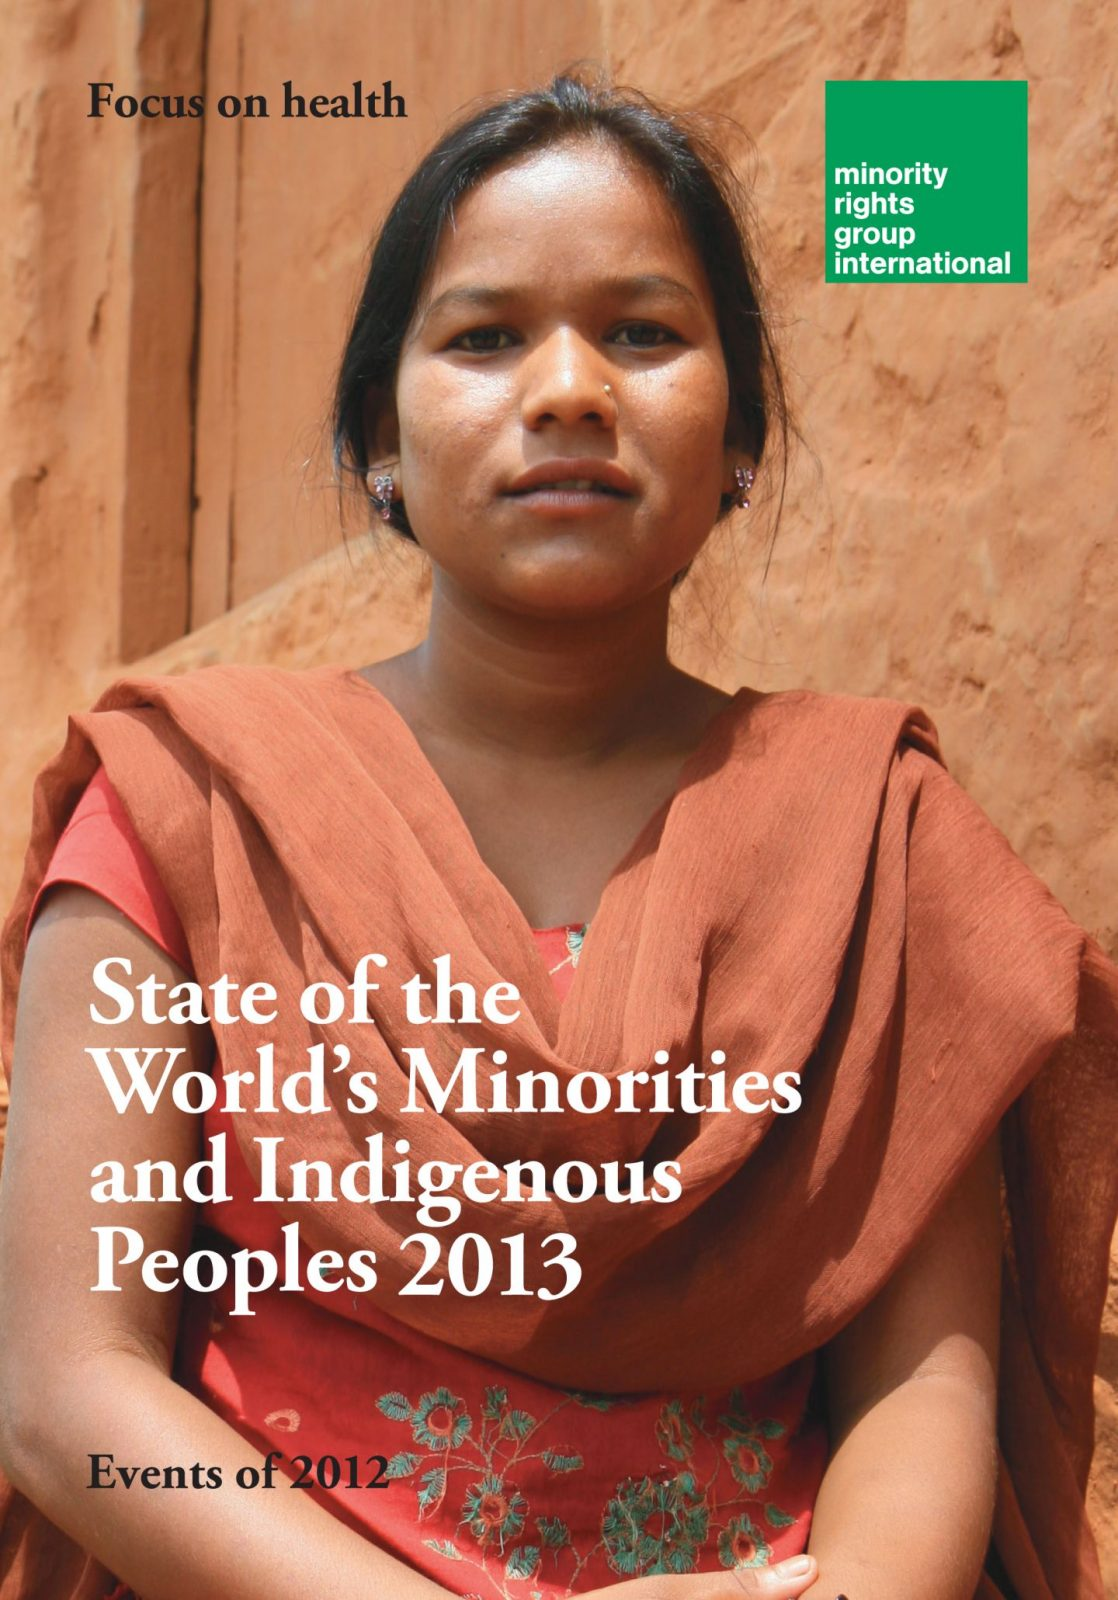 State of the World's Minorities and Indigenous Peoples 2013